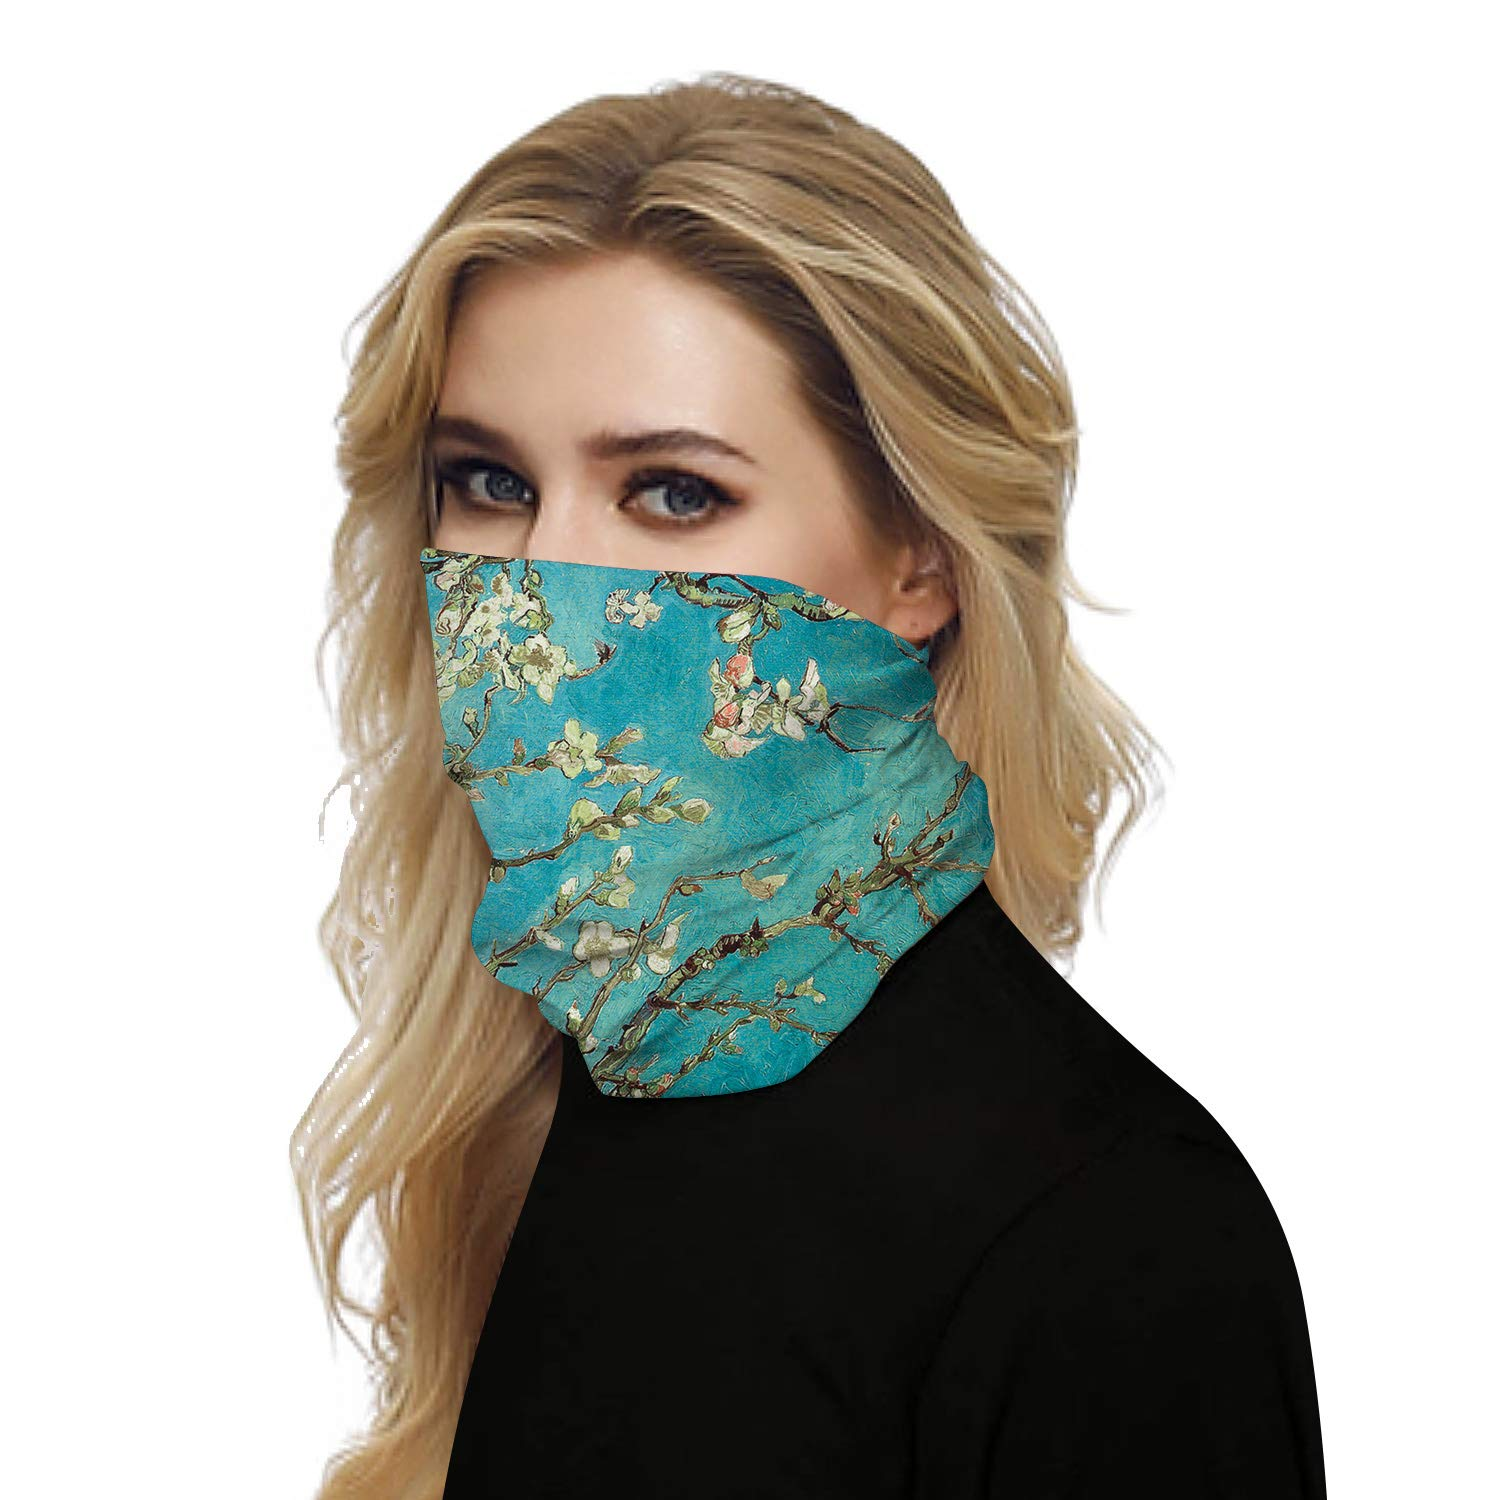 Bandana Face Mask for Men and Women Neck Gaiter Headwear Scarf Dust Wind Sun Protection Seamless Tube Mask